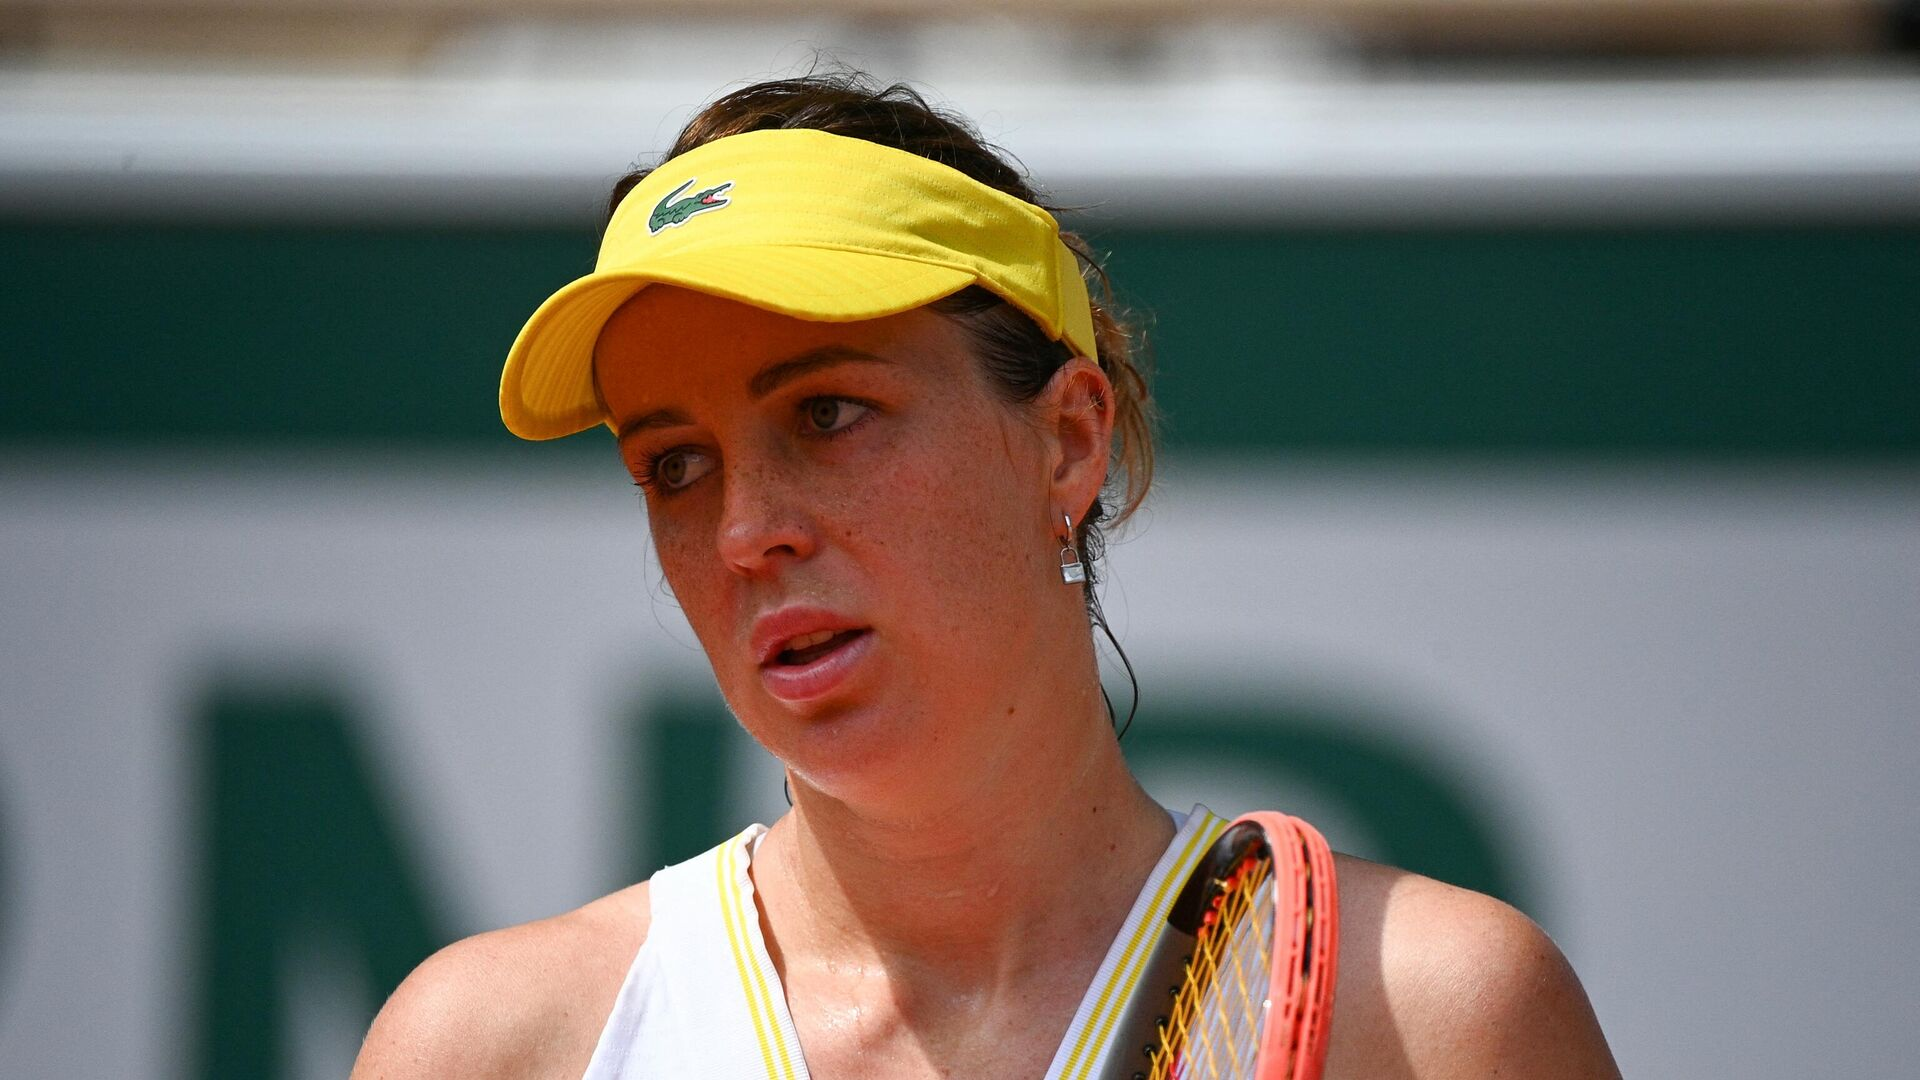 Russia's Anastasia Pavlyuchenkova reacts as she plays against Czech Republic's Barbora Krejcikova during their women's singles final tennis match on Day 14 of The Roland Garros 2021 French Open tennis tournament in Paris on June 12, 2021. (Photo by Christophe ARCHAMBAULT / AFP) - РИА Новости, 1920, 12.06.2021